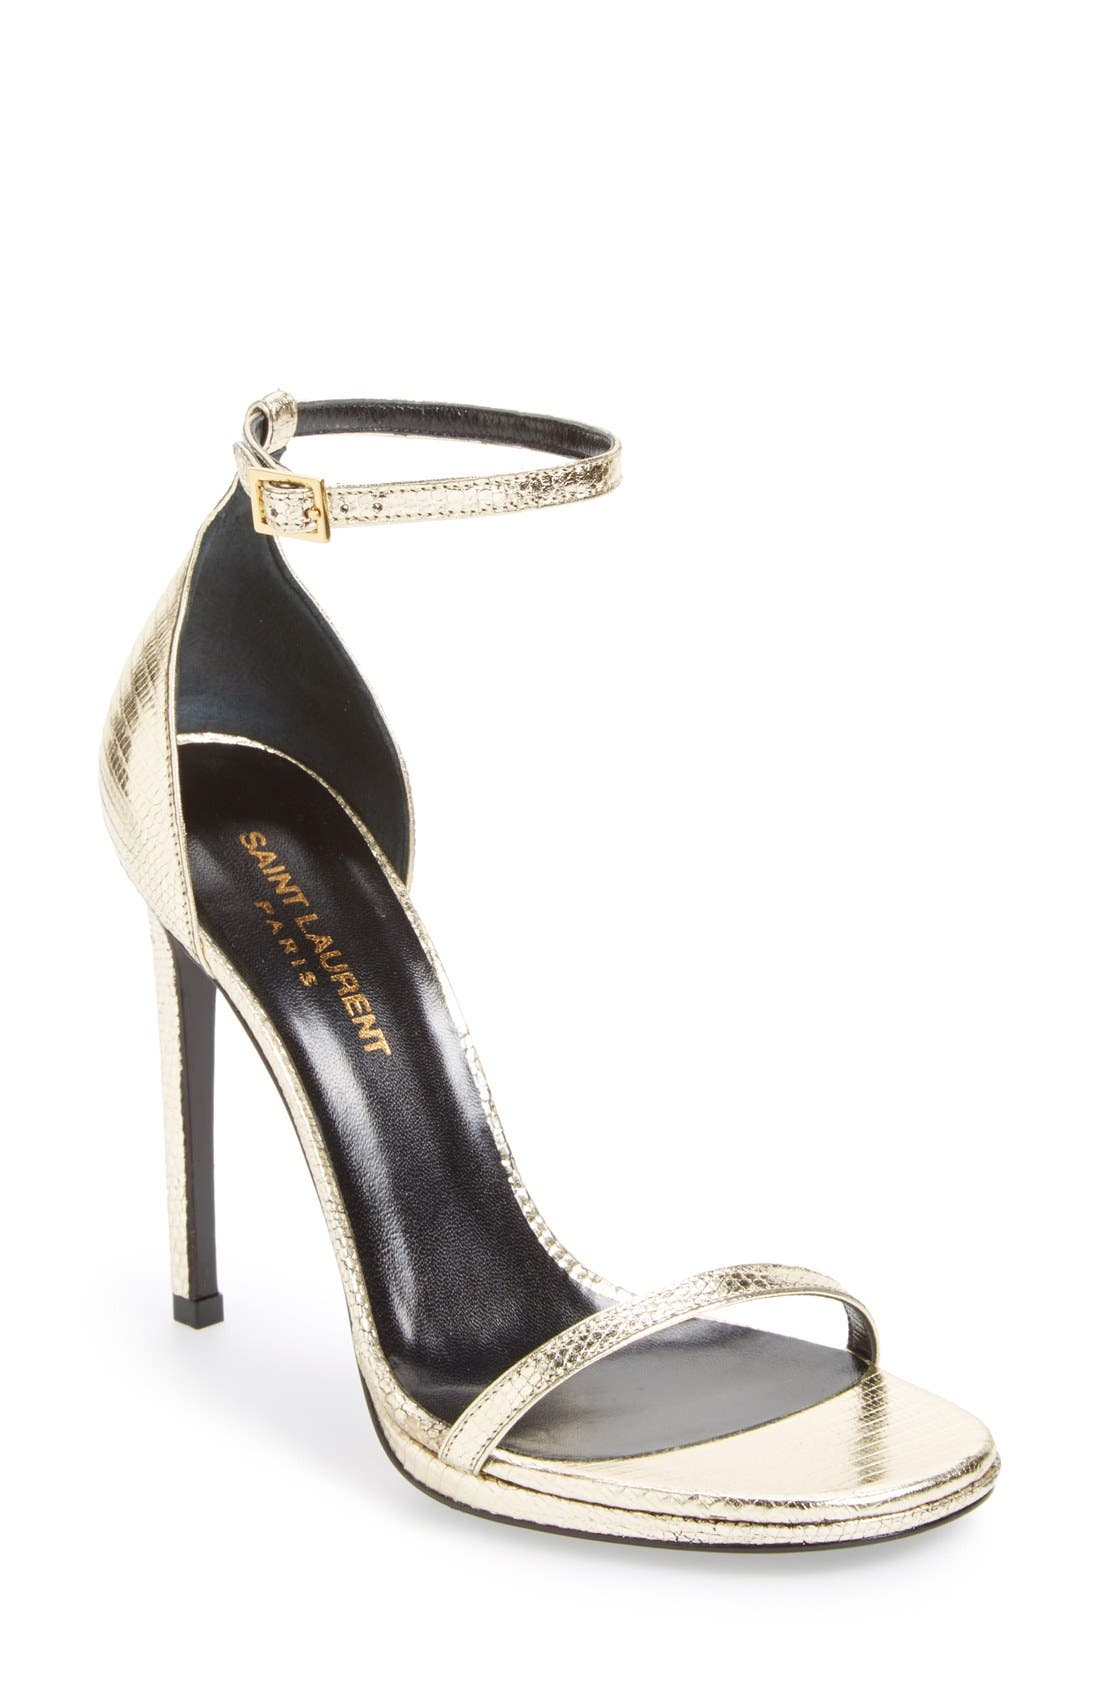 Main Image - Saint Laurent 'Jane' Metallic Lizard Embossed Ankle Strap Sandal (Women)